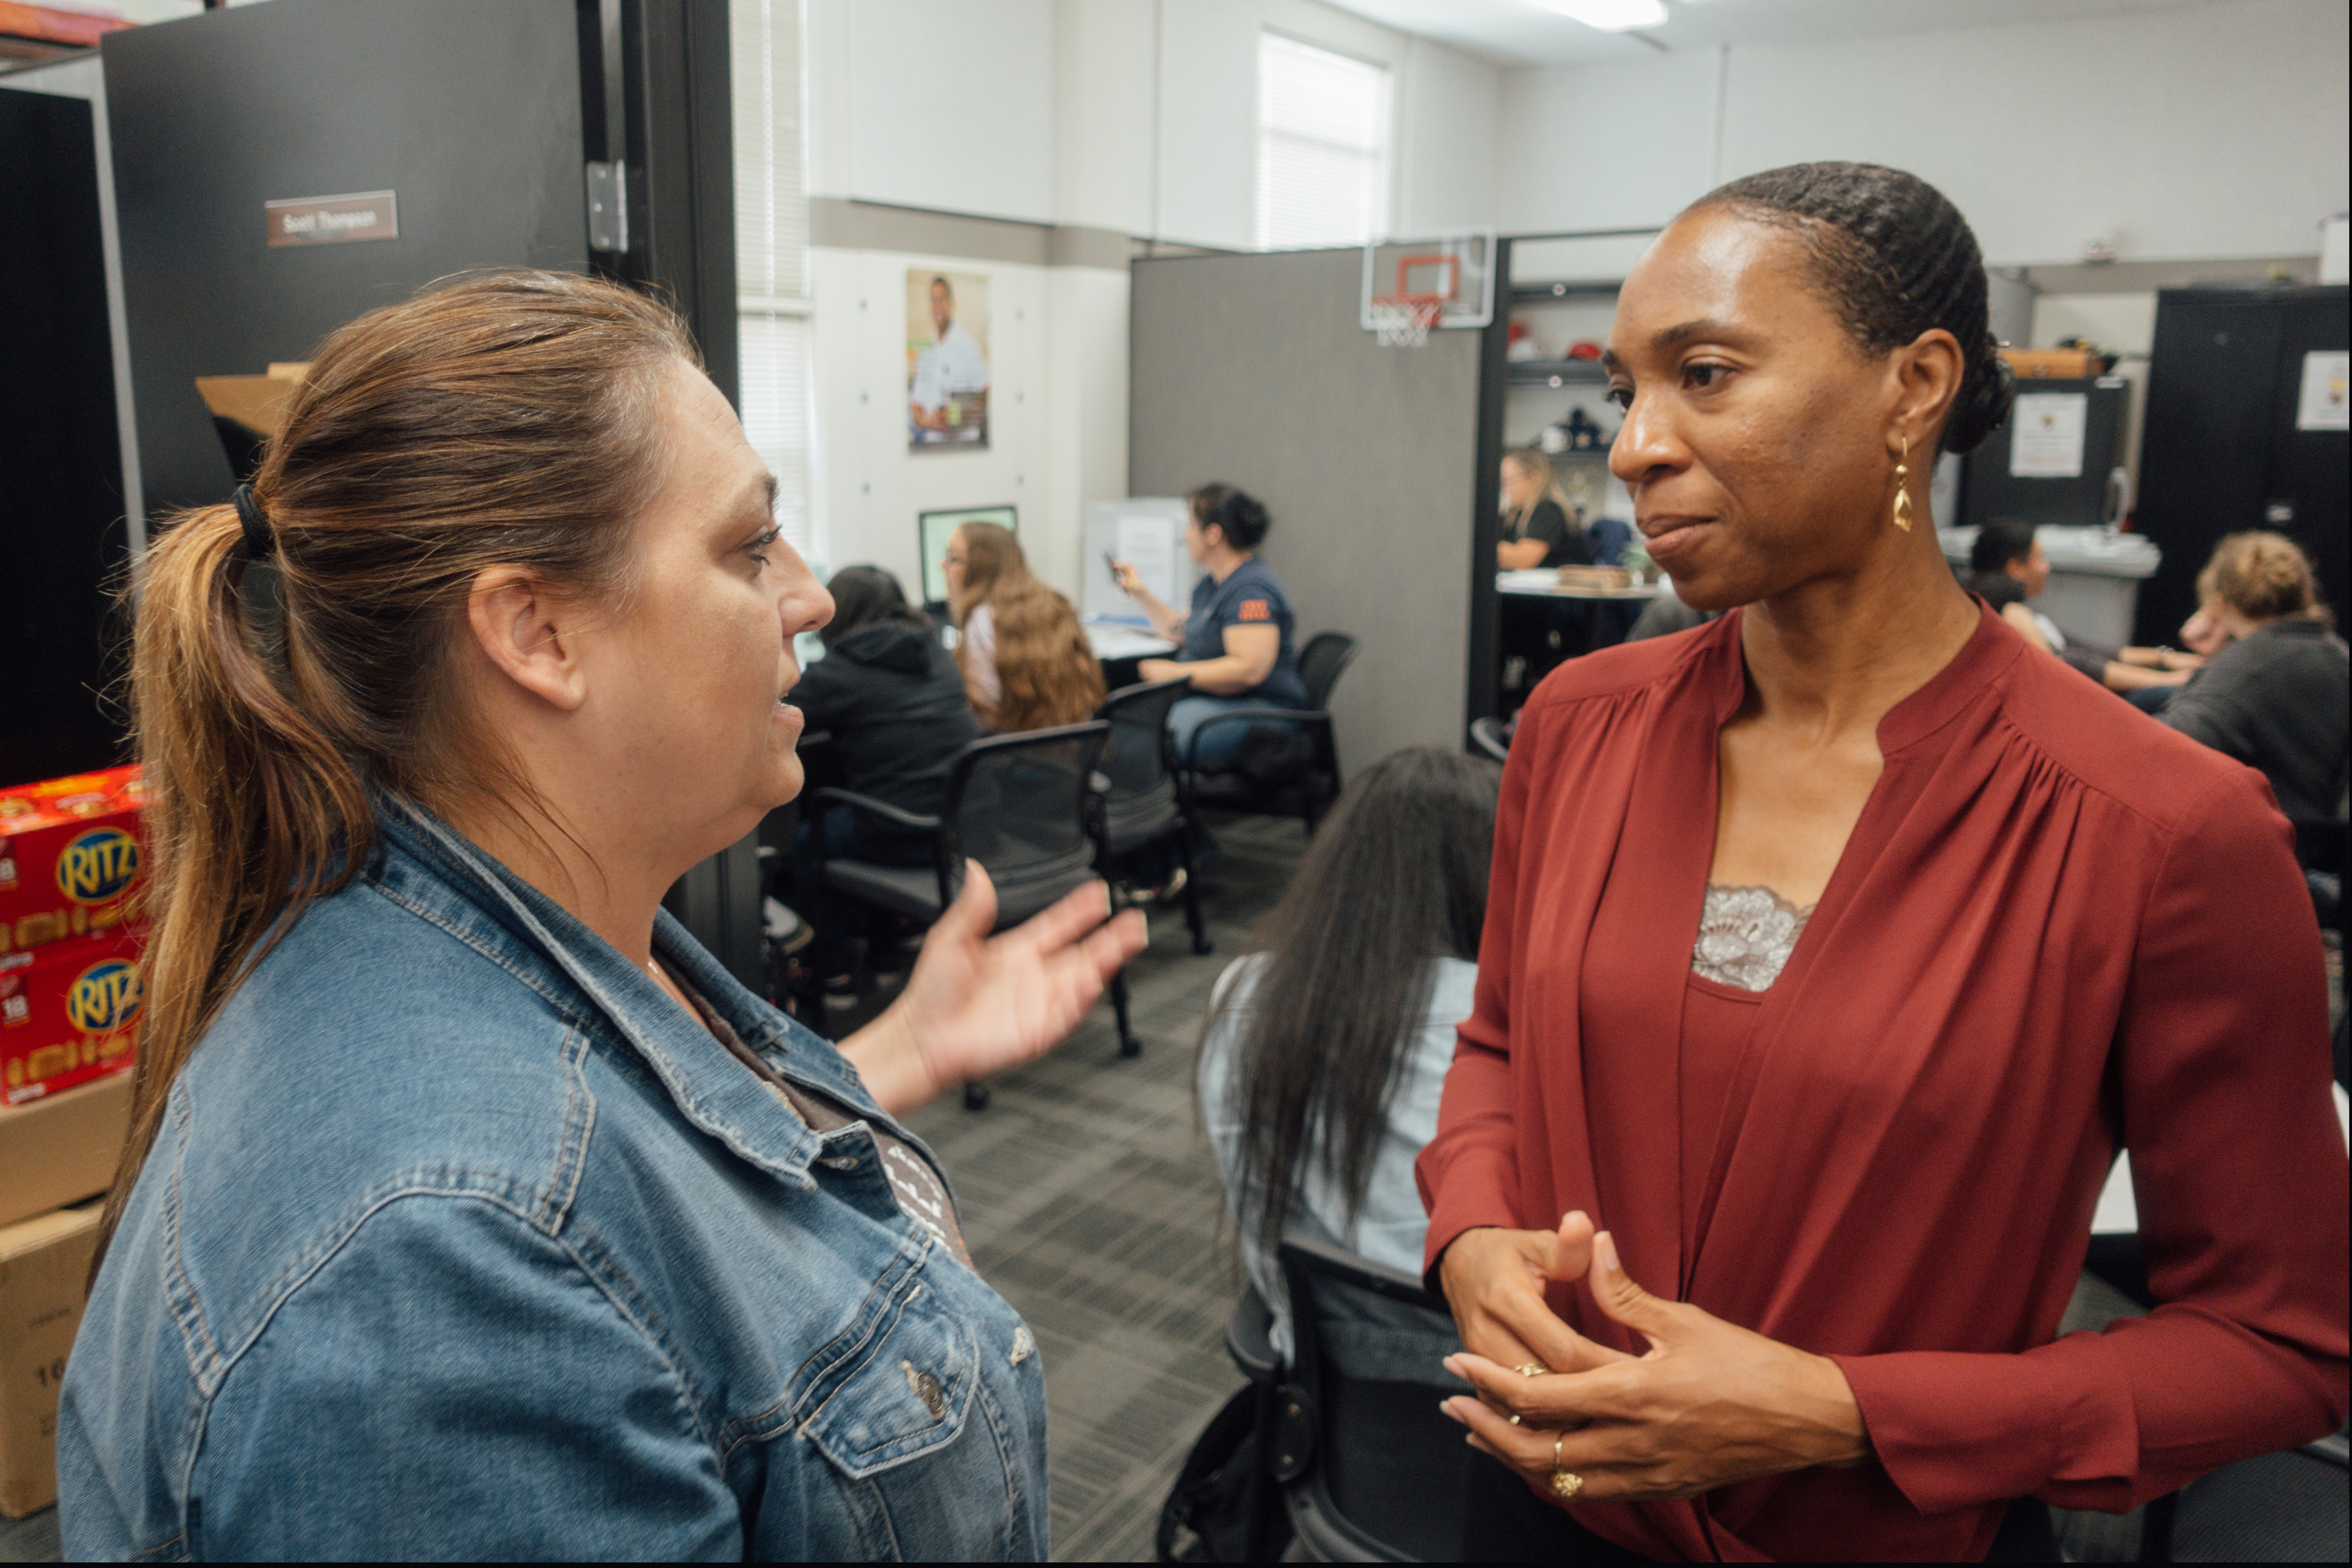 Caption: Clinical psychologist Miatta Snetter (right) speaks to Marine Corps veteran Sherry Pope at the Fullerton College Veterans Resource Center. Snetter says woman sometimes feel uncomfortable around male veterans at the VA., Credit: Libby Denkmann/American Homefront